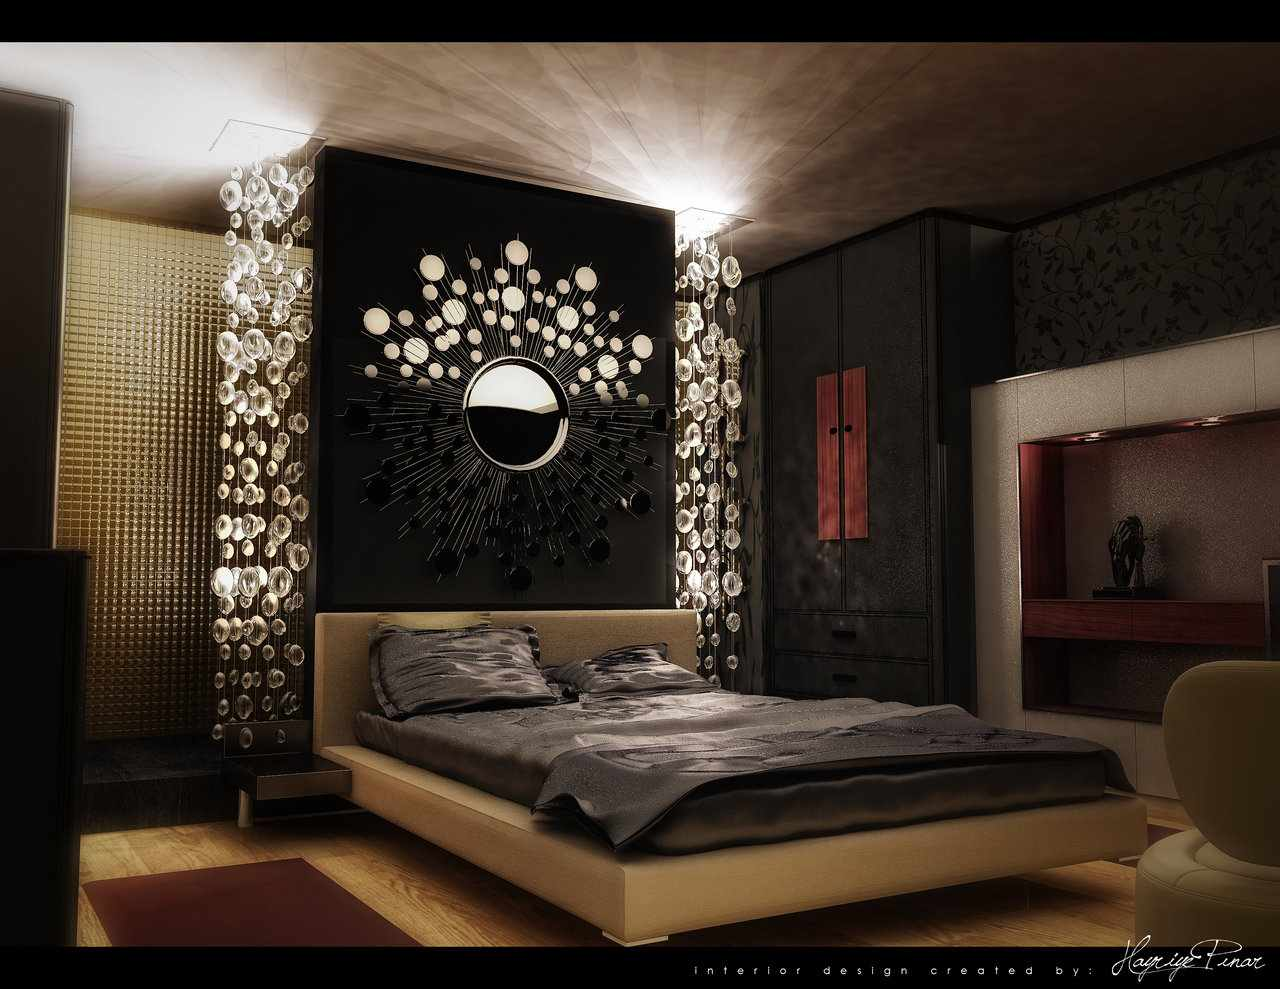 Ikea bedroom ideas ikea bedroom 2014 ideas room design for Bedroom layout ideas